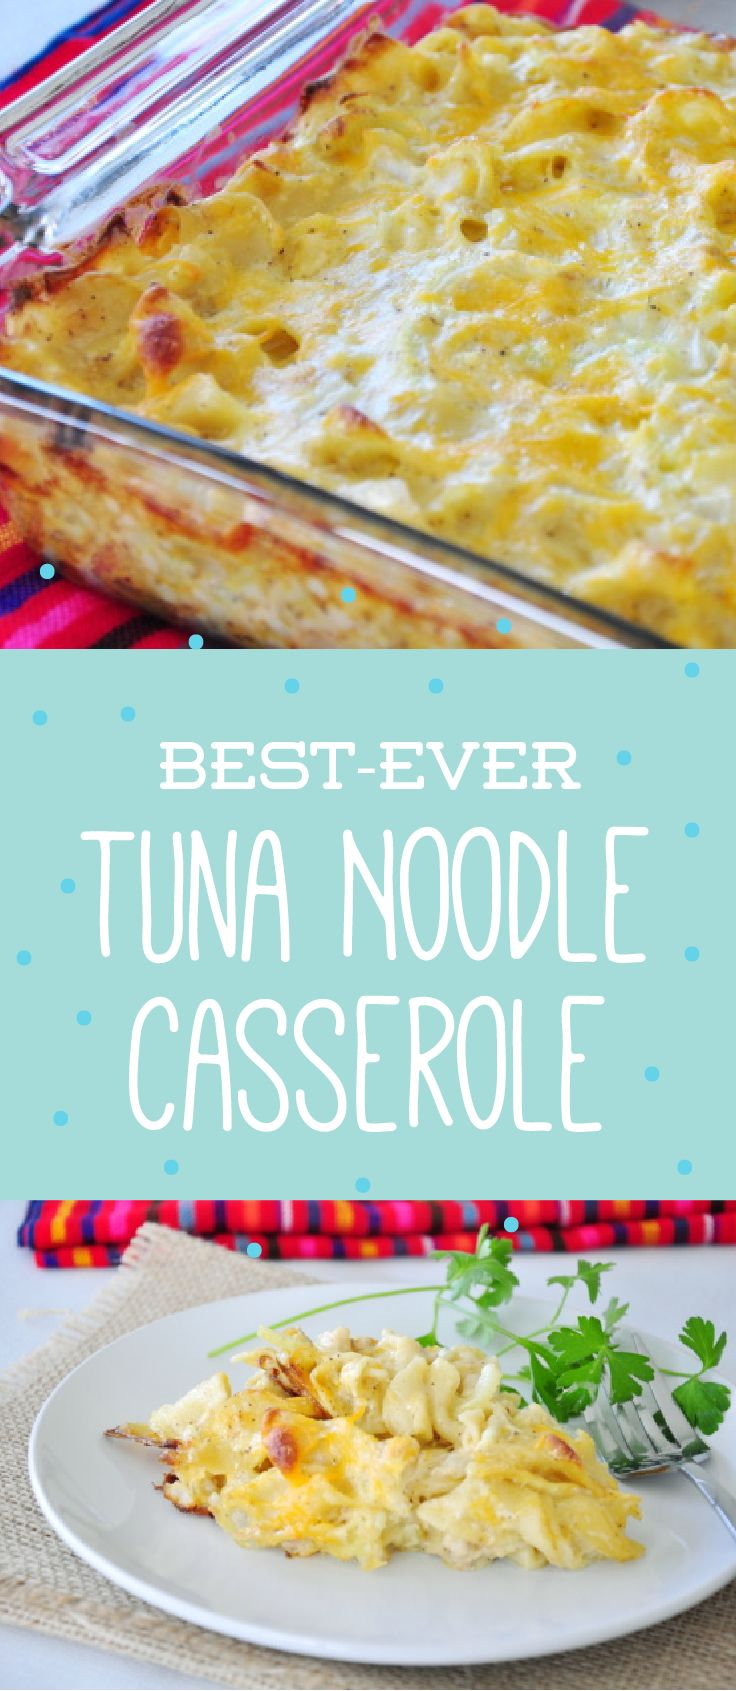 The name says it all with this recipe for Best Ever Tuna Noodle Casserole                                                                                                                                                                                 More